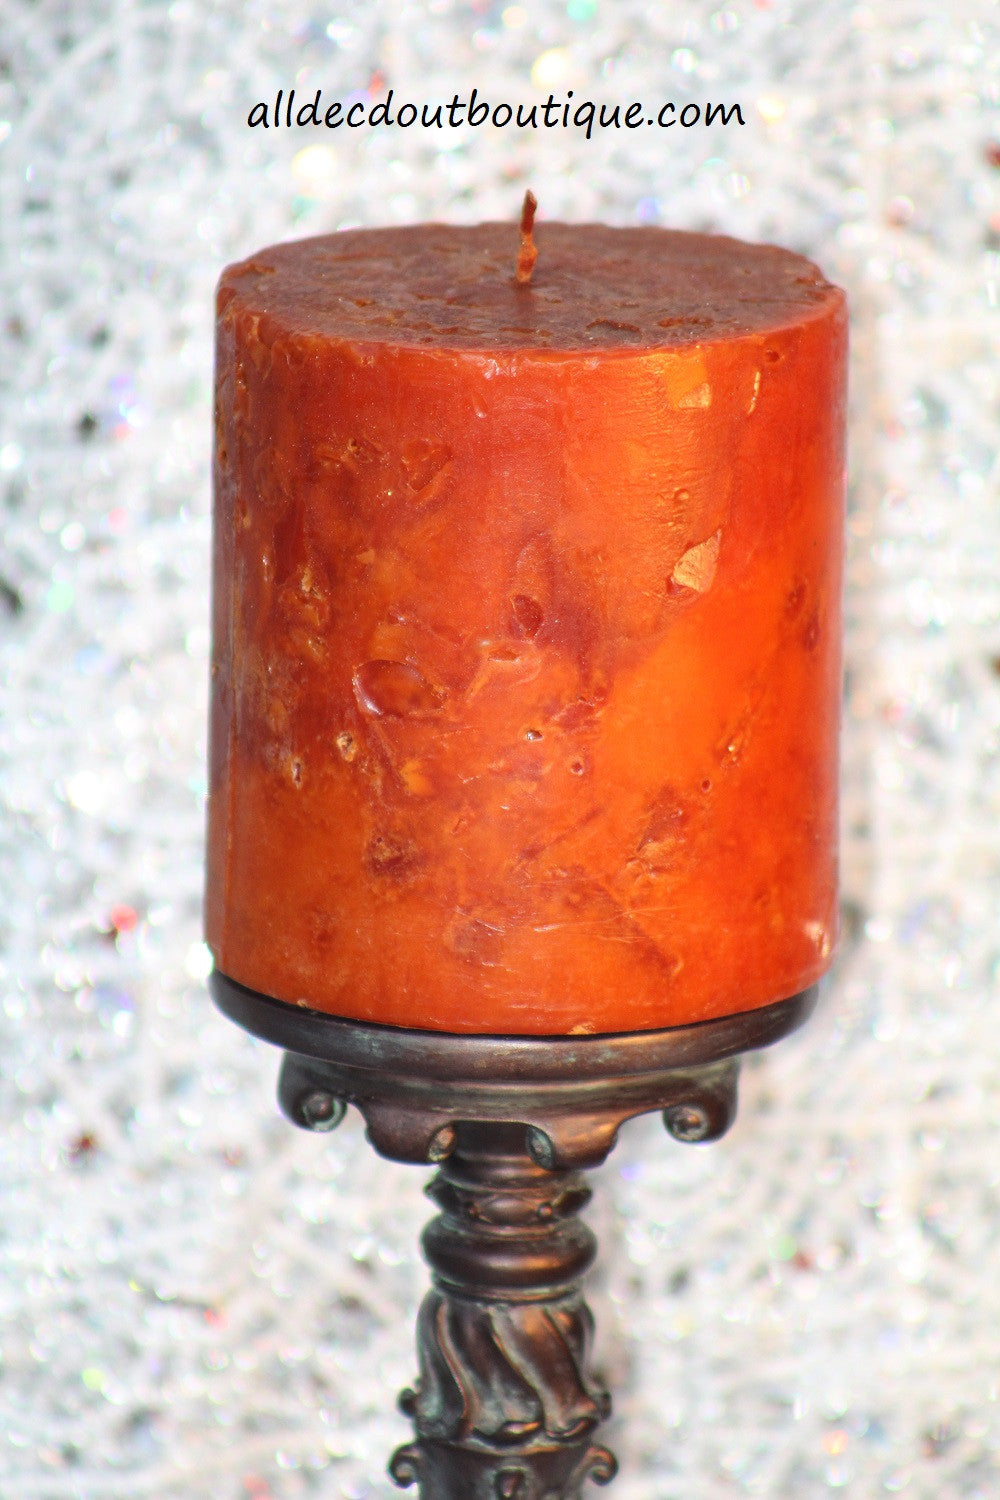 Pillar Candle | 4 x 4 Orange Unscented - All Decd Out